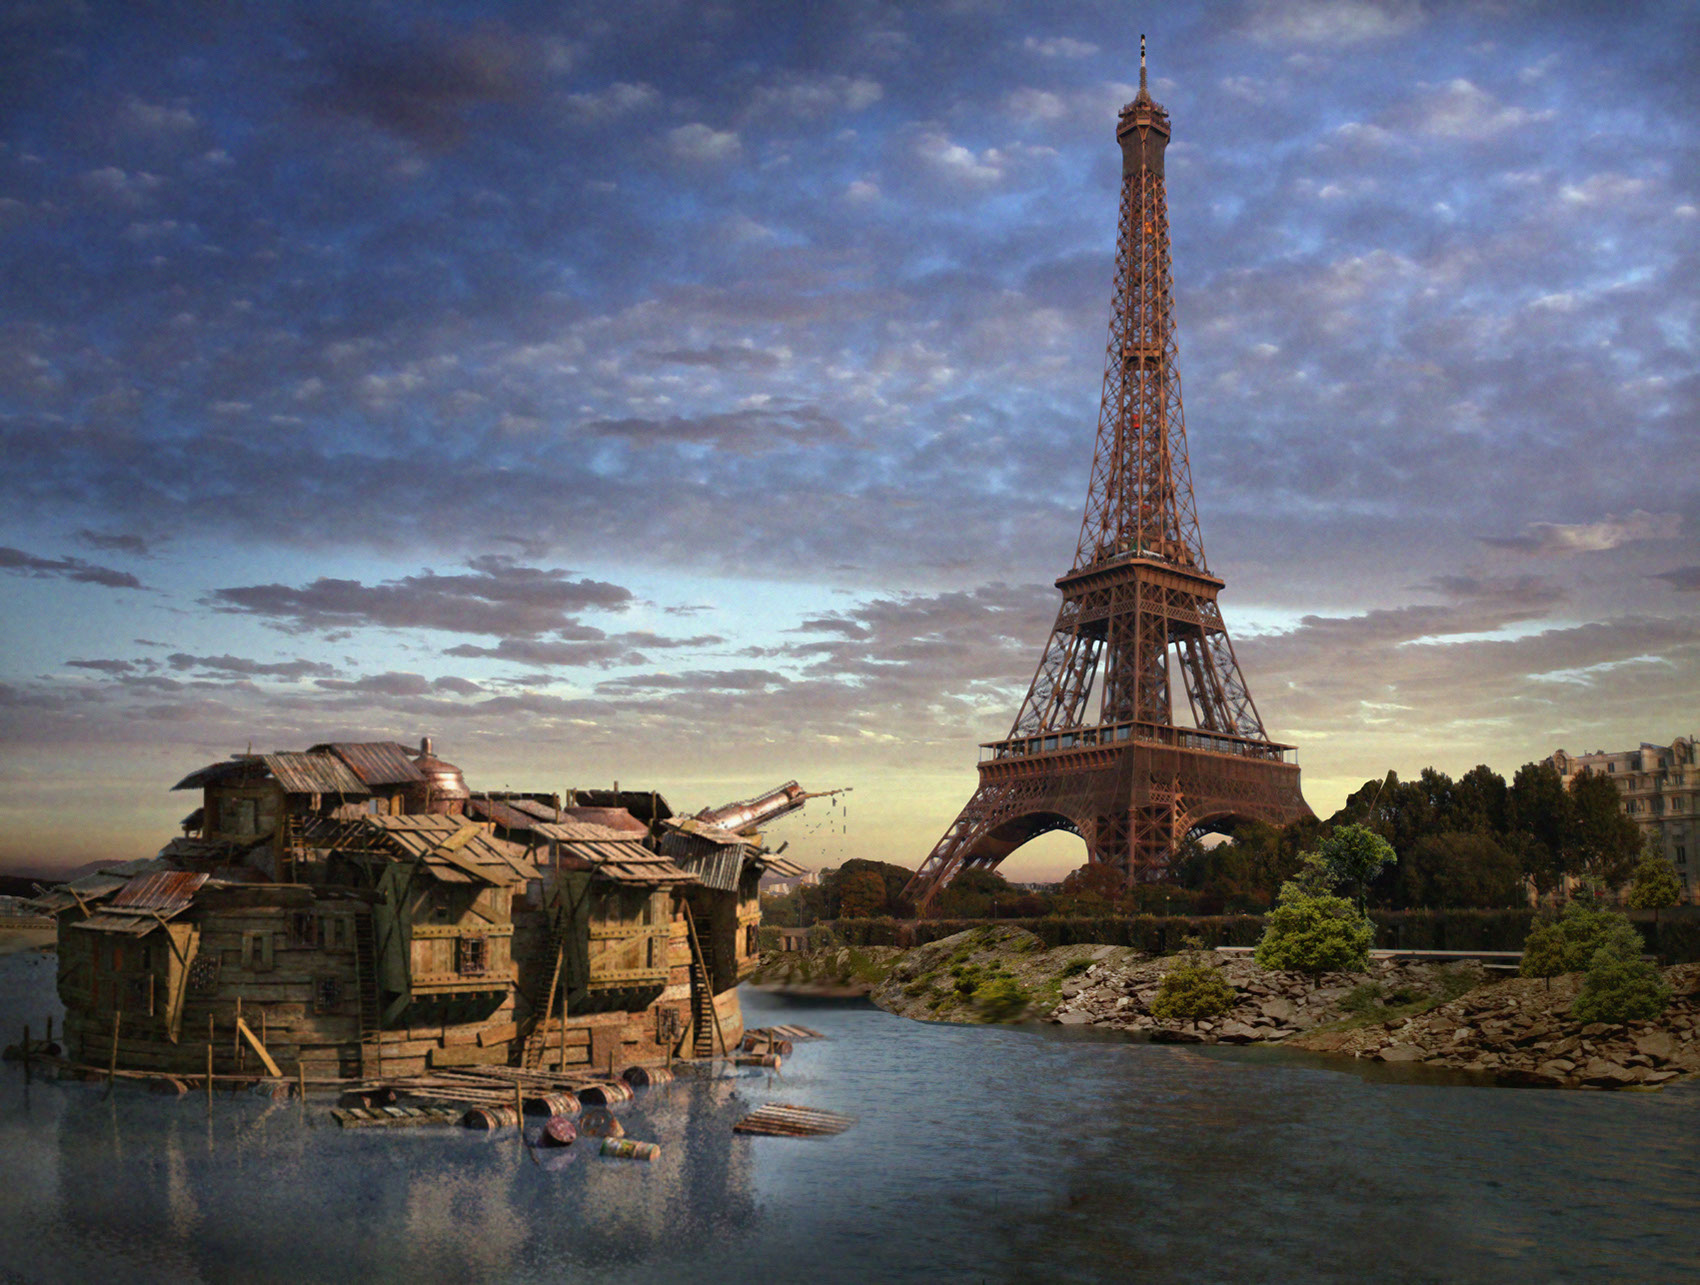 CGI-photography-matte-Architecture_Eiffel tower